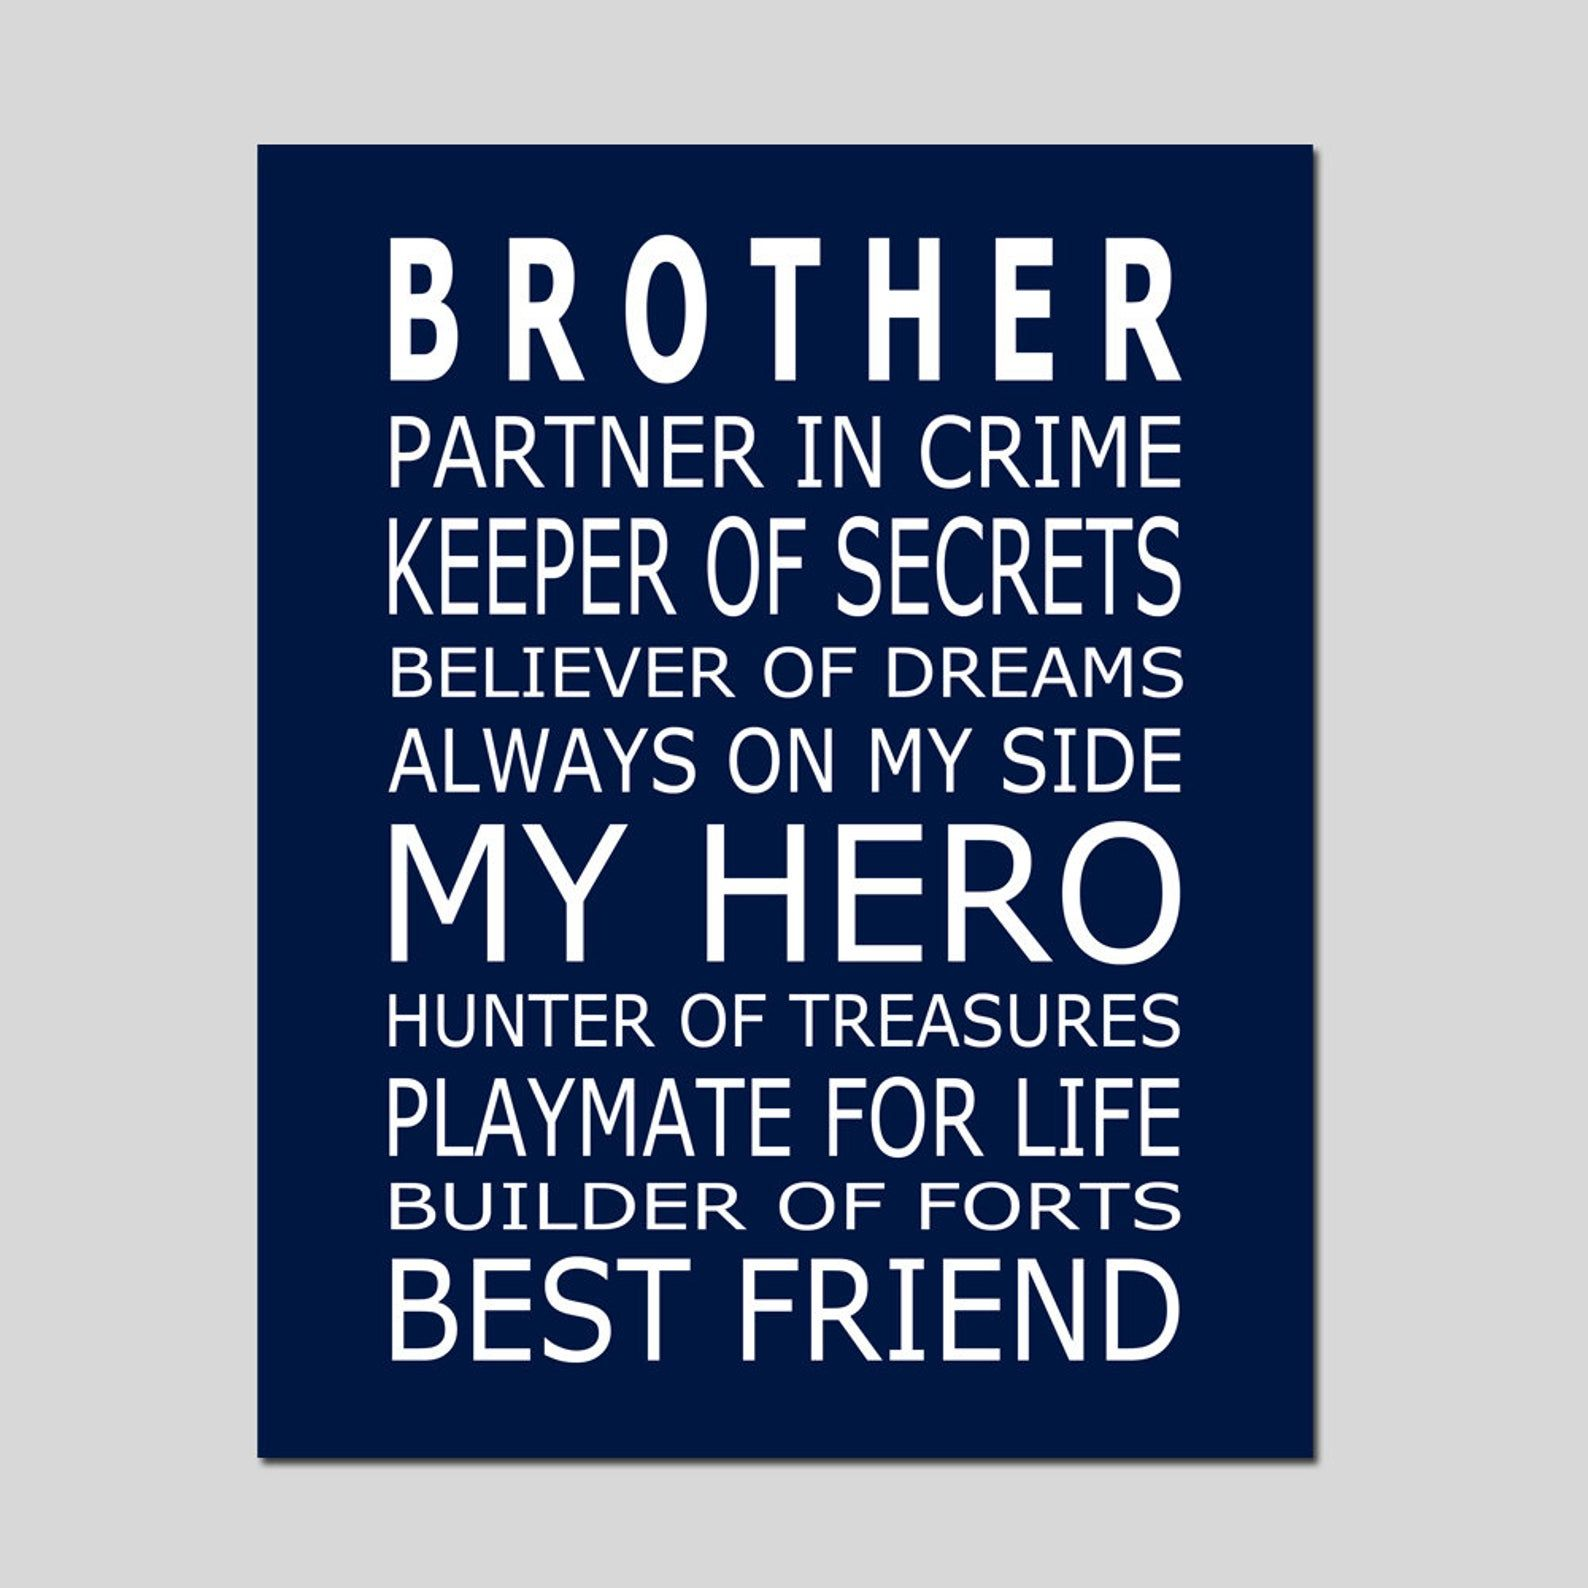 Big Brother Quotes On Pinterest Brother Birthday Quotes Little Brother Birthday Quotes Big Brother Quotes Cute Brother Quotes